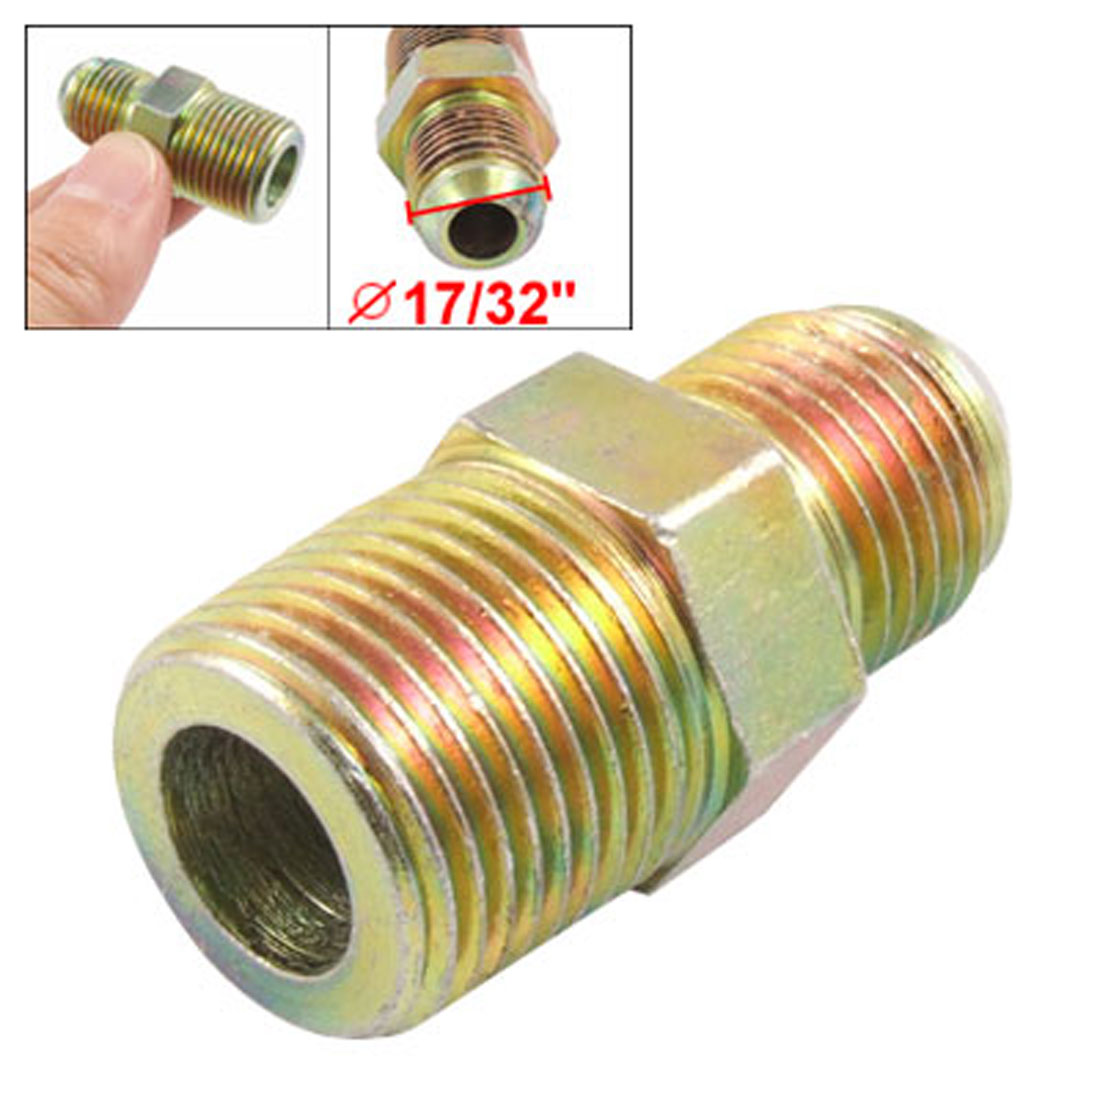 "9/25"" Flare Tube x 5/8"" Pipe Thread Straight Hydraulic Adapter Fitting Half Union"